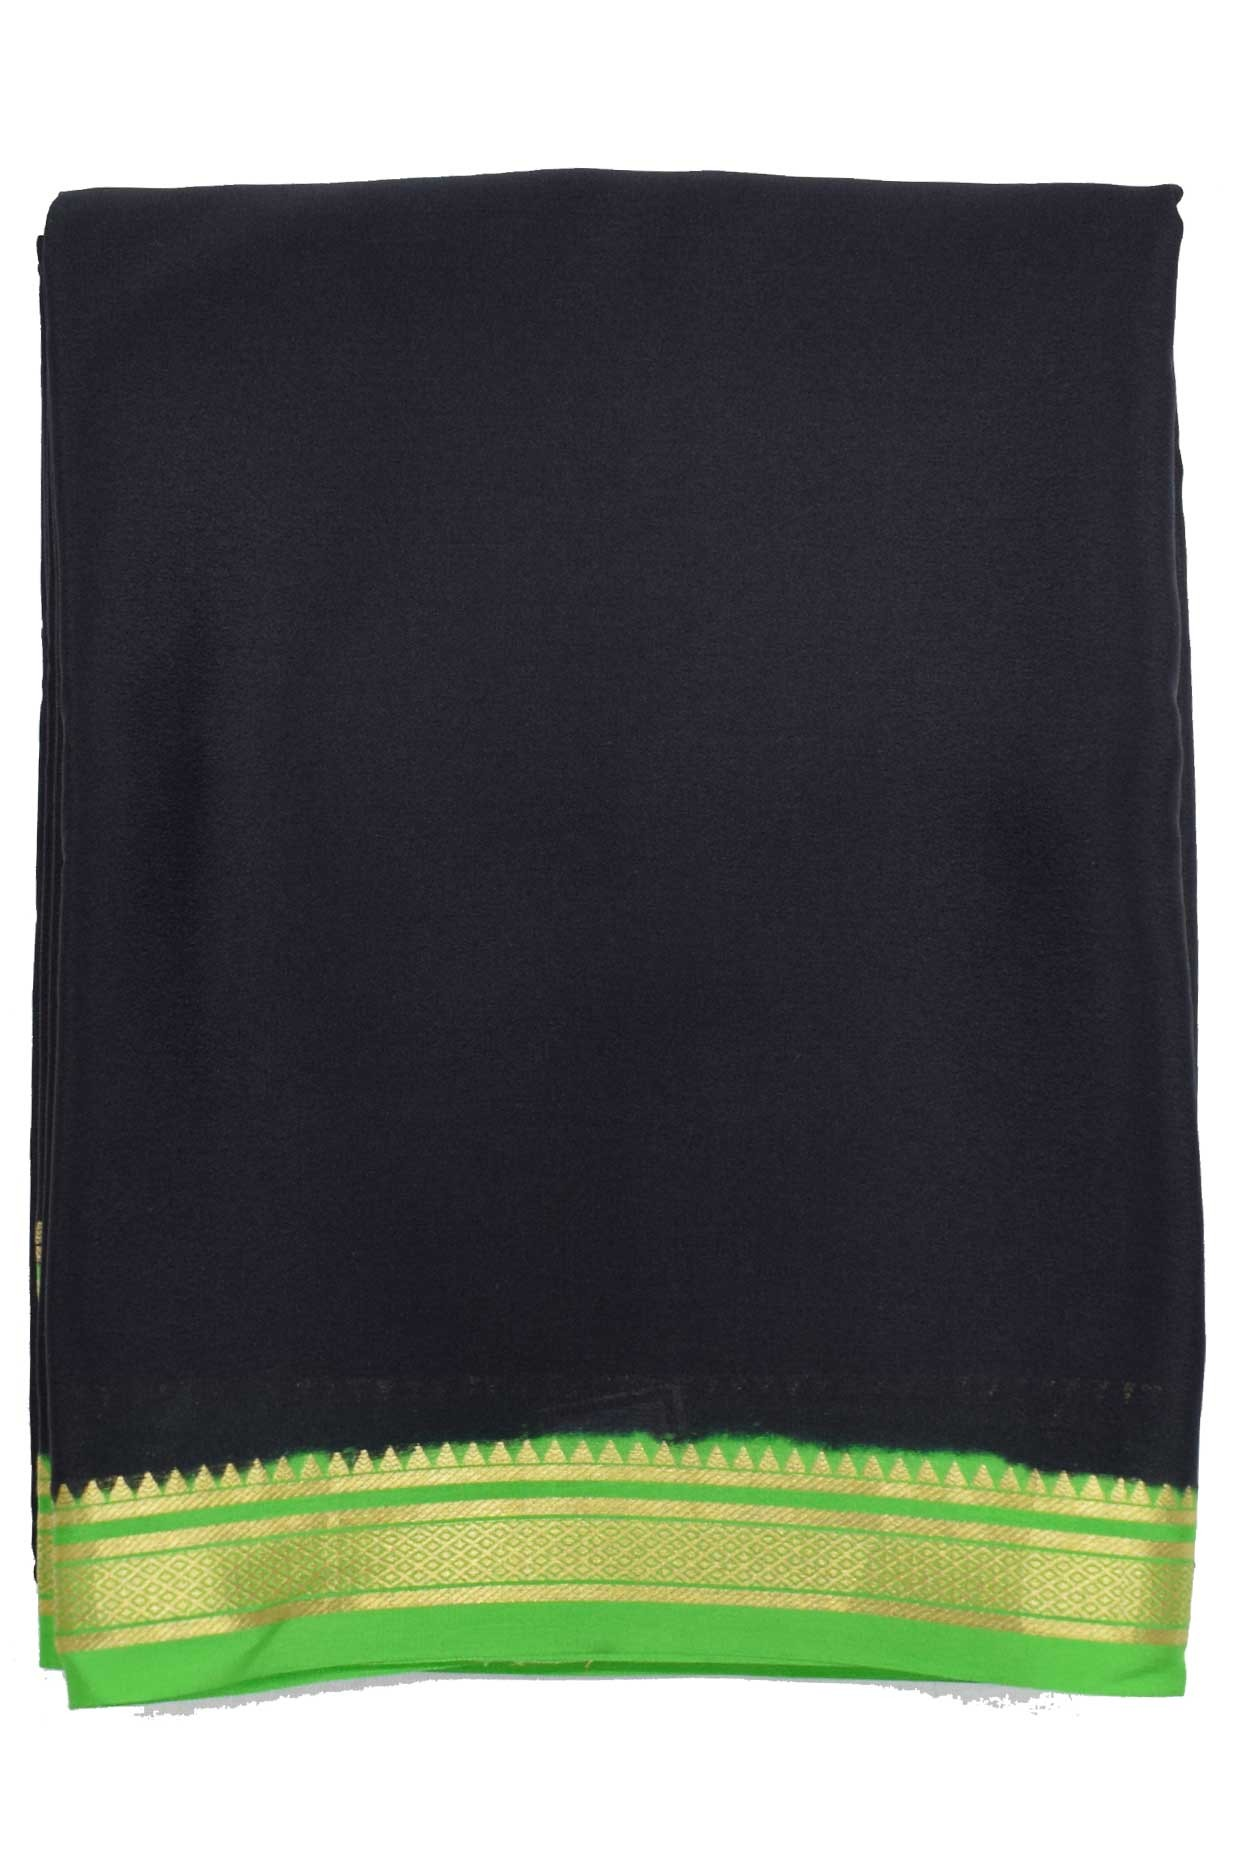 100% Pure Crape Mysore Traditional Silk Saree SC-38 BLACK_GREEN